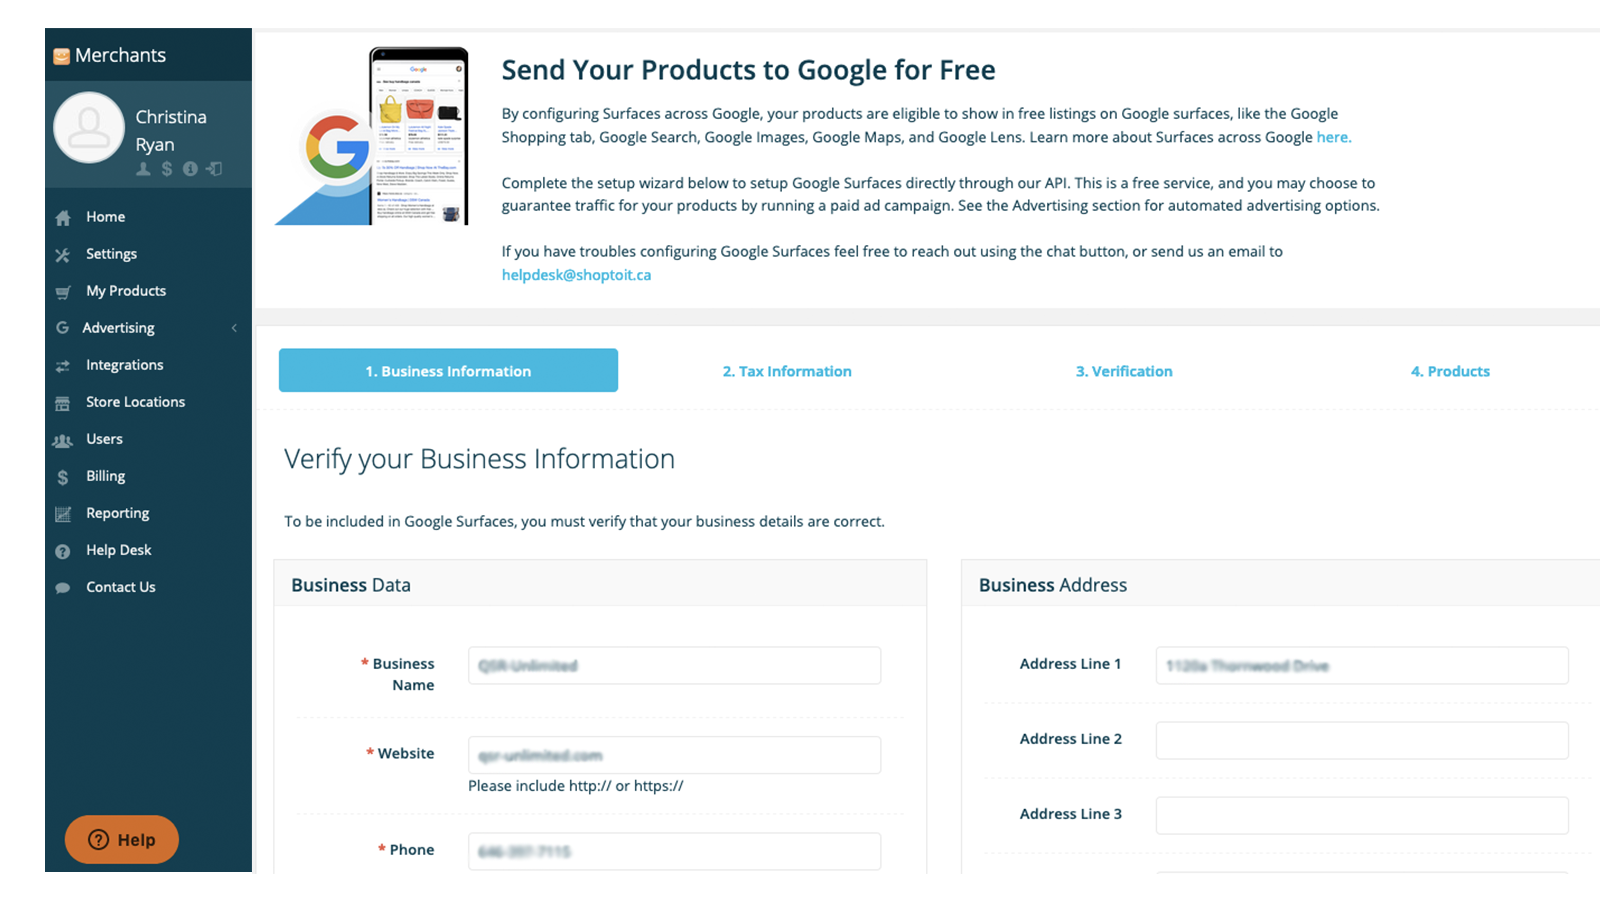 Use our simple wizard to configure free Google product listings